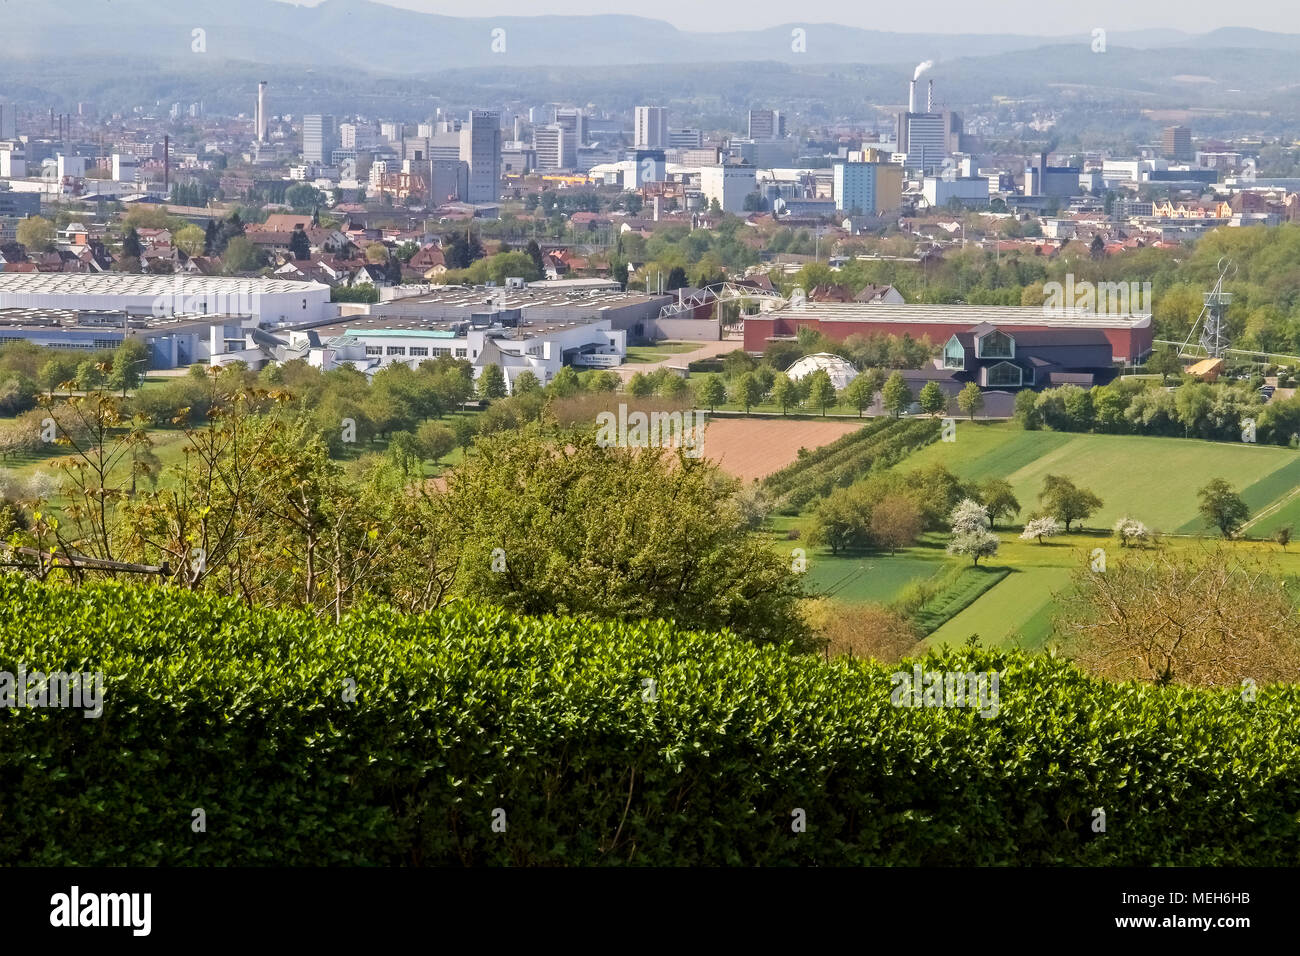 Elevated view of The Vitra Campus and factory. Weil am Rhein, Germany - Stock Image